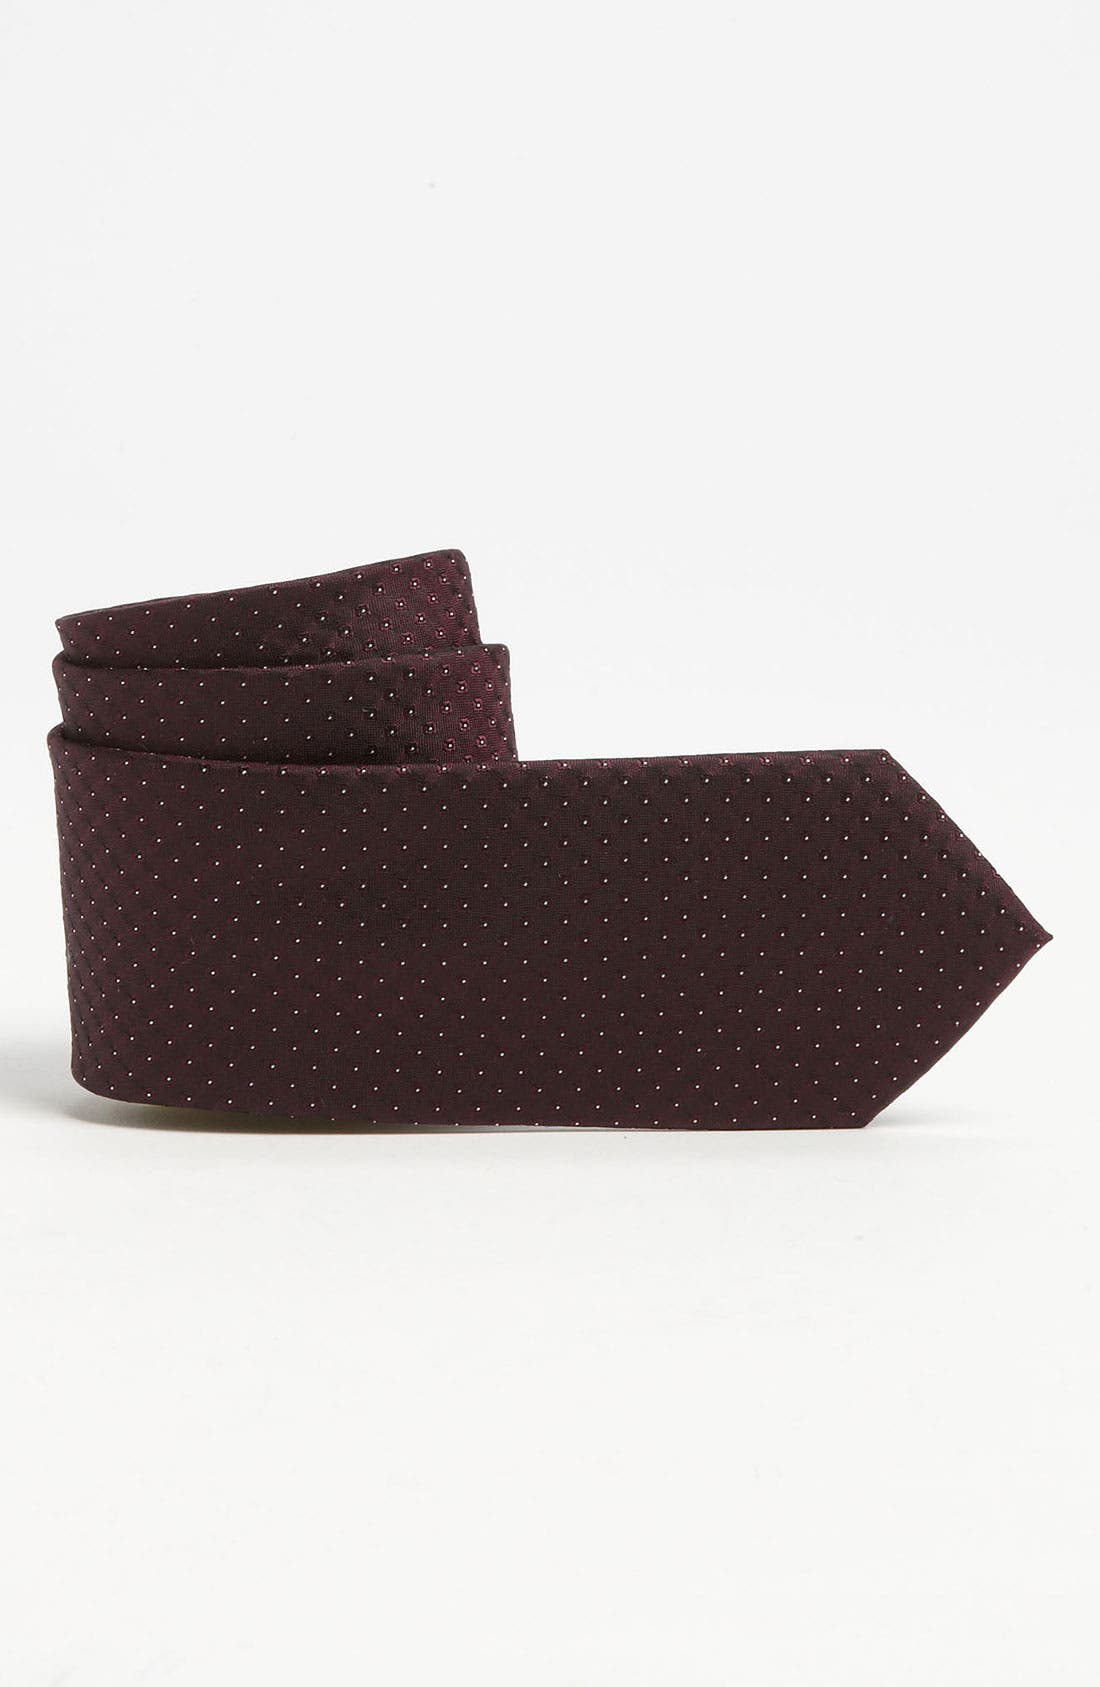 Alternate Image 1 Selected - C2 by Calibrate Woven Silk Tie (Big Boys)